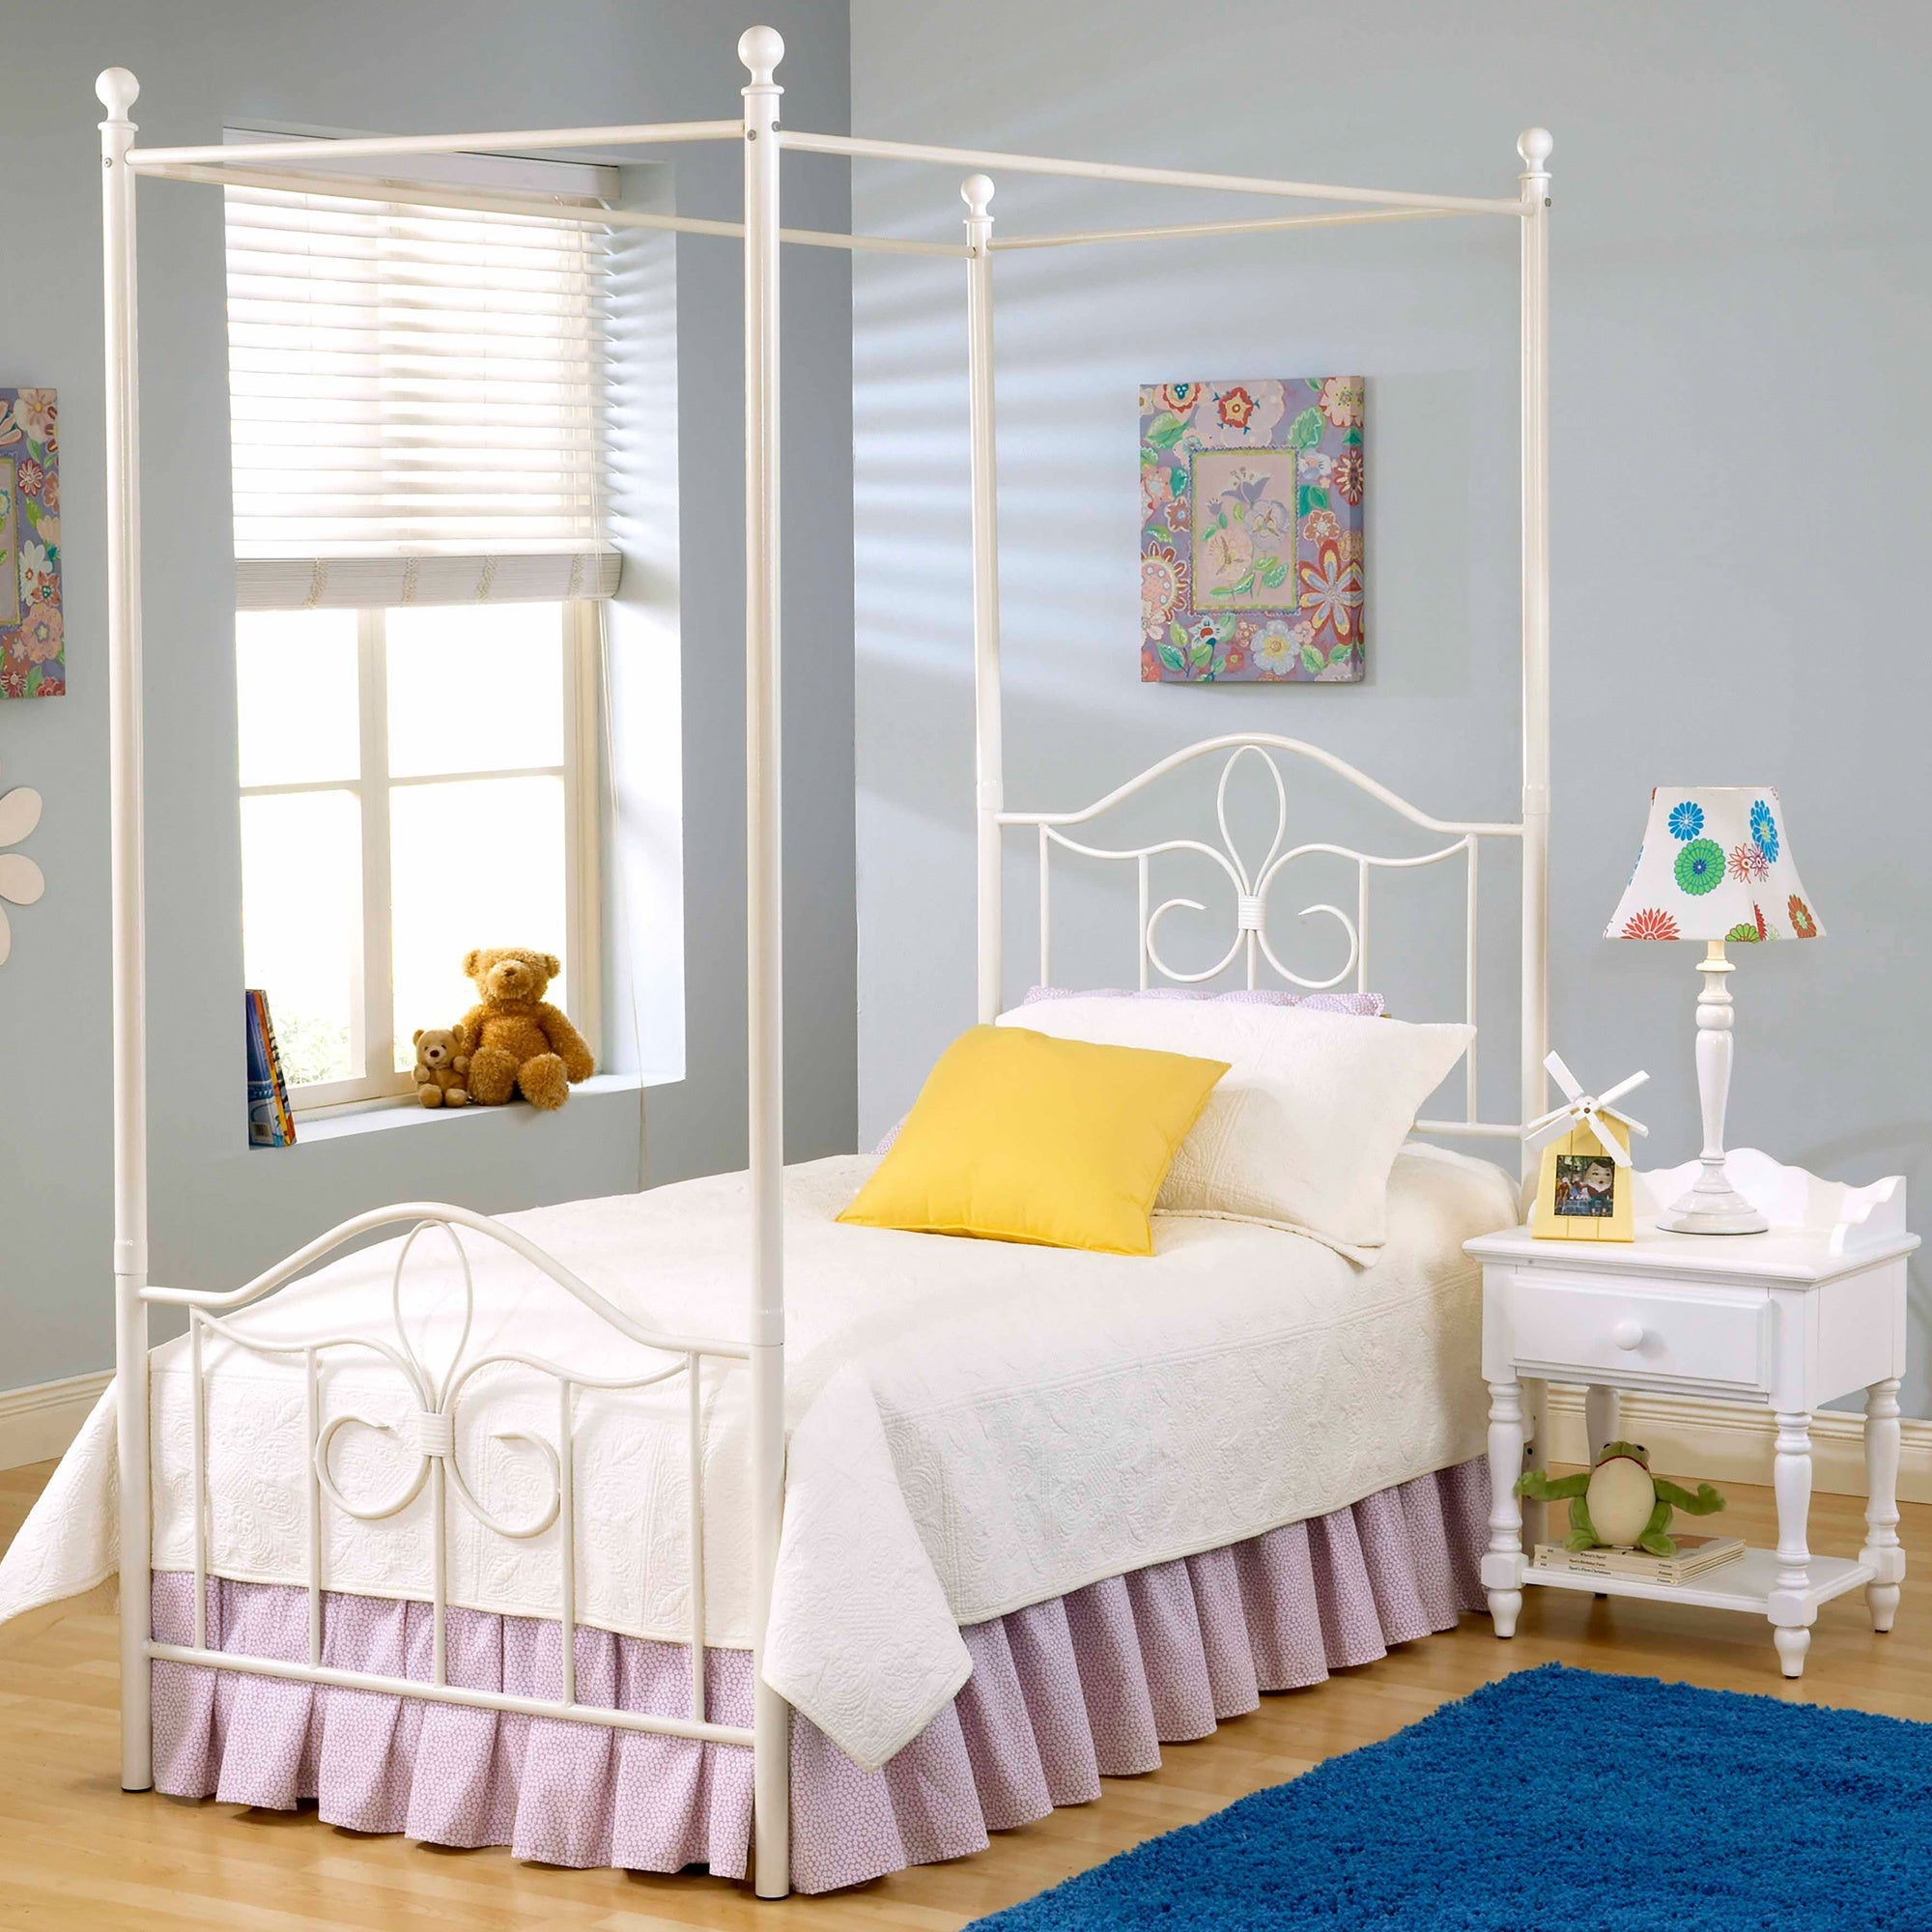 Hillsdale Westfield Canopy Bed Set (Full), White